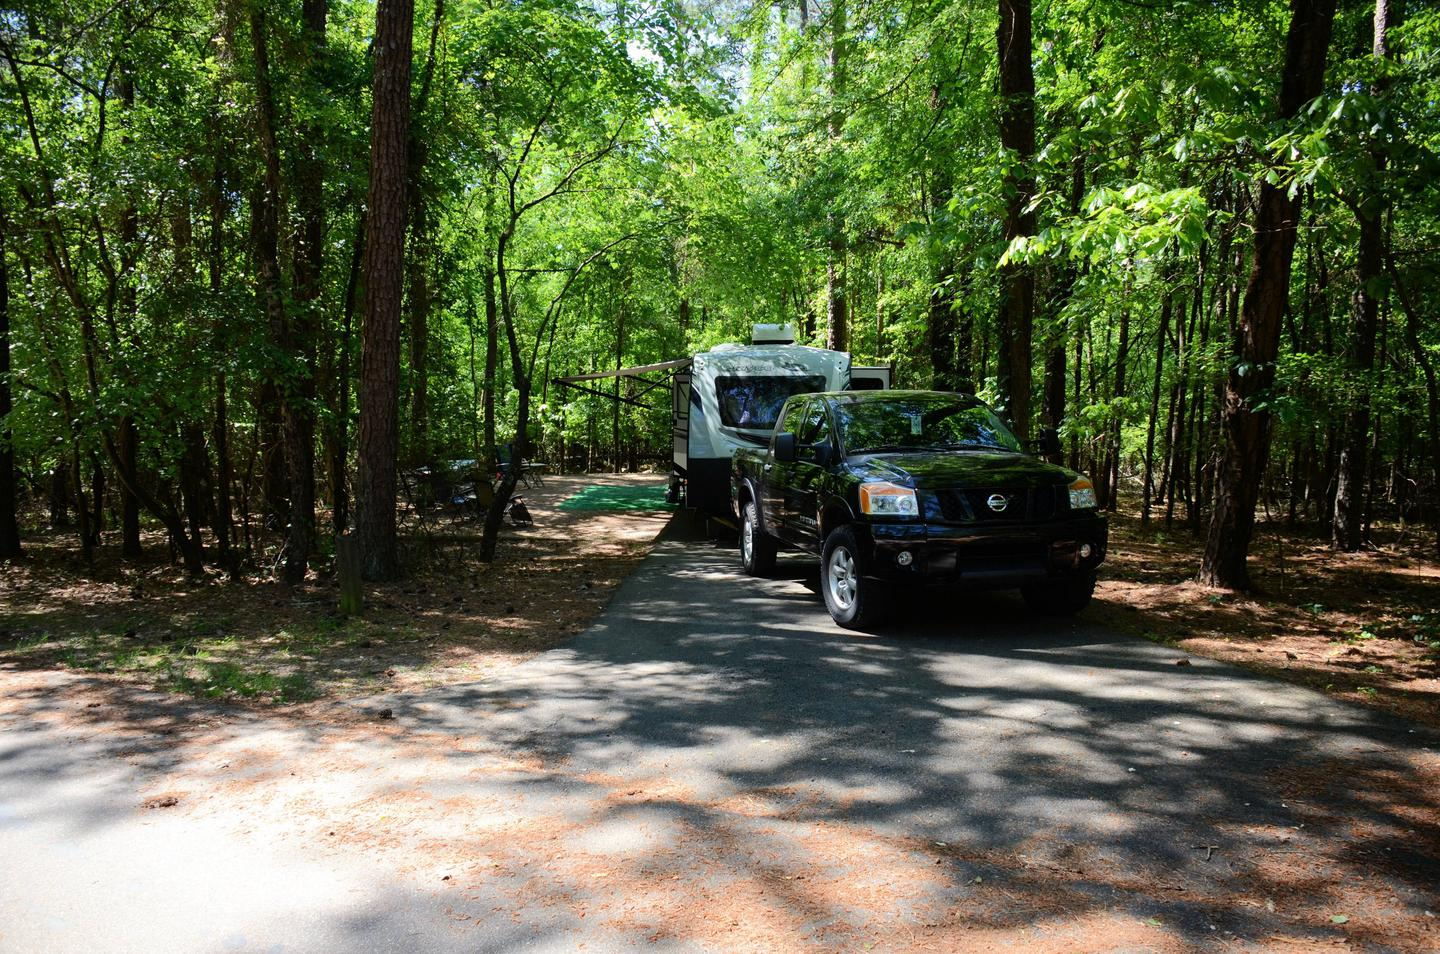 Driveway entrance angle/slope, utilities-side clearance, awning-side clearance.McKinney Campground, campsite 63.